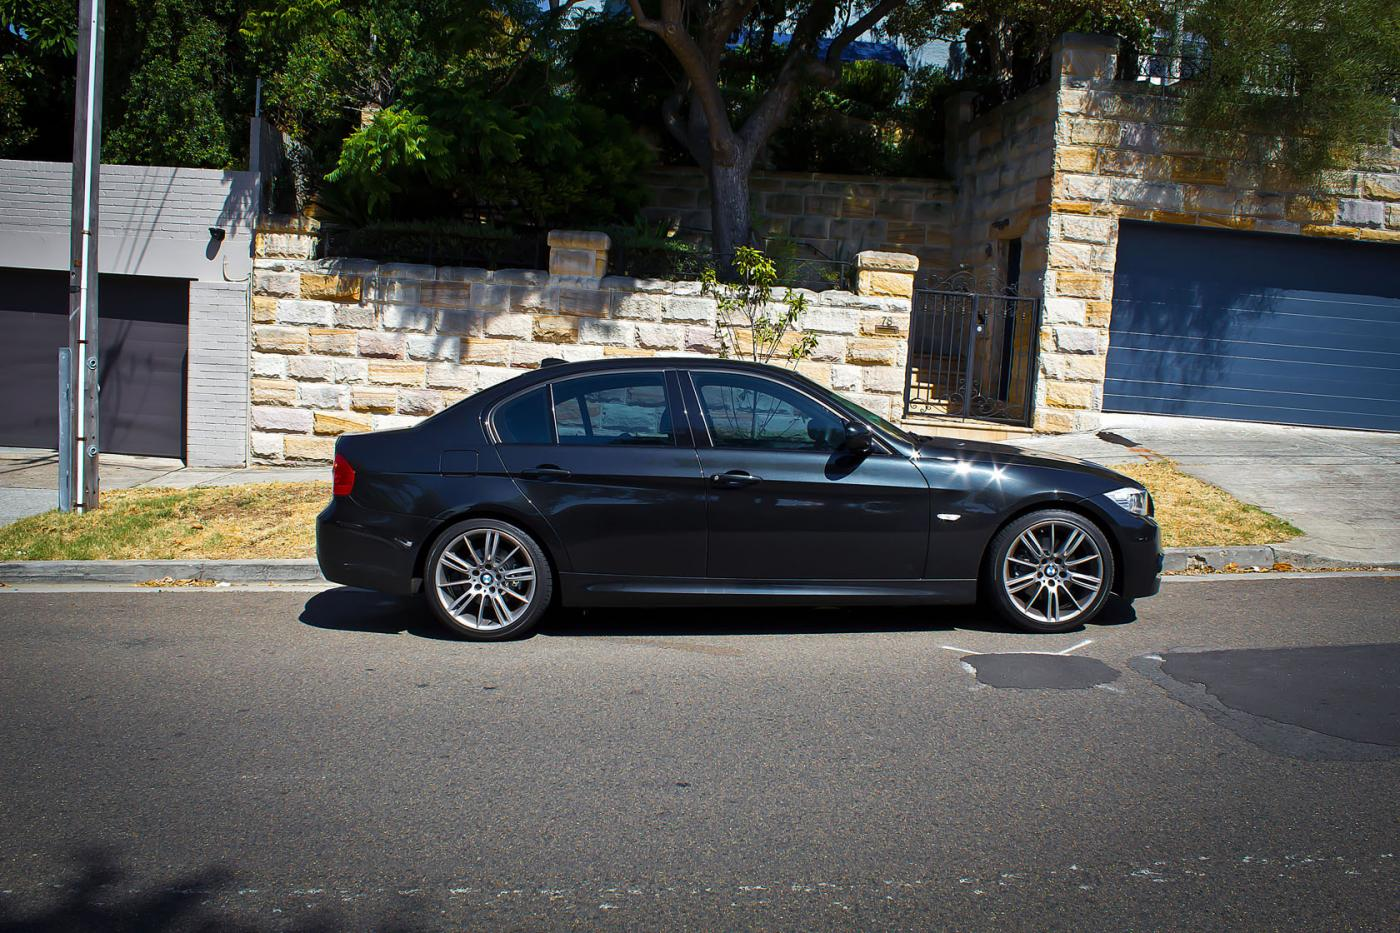 BMW 3 series 325i 2013 photo - 12